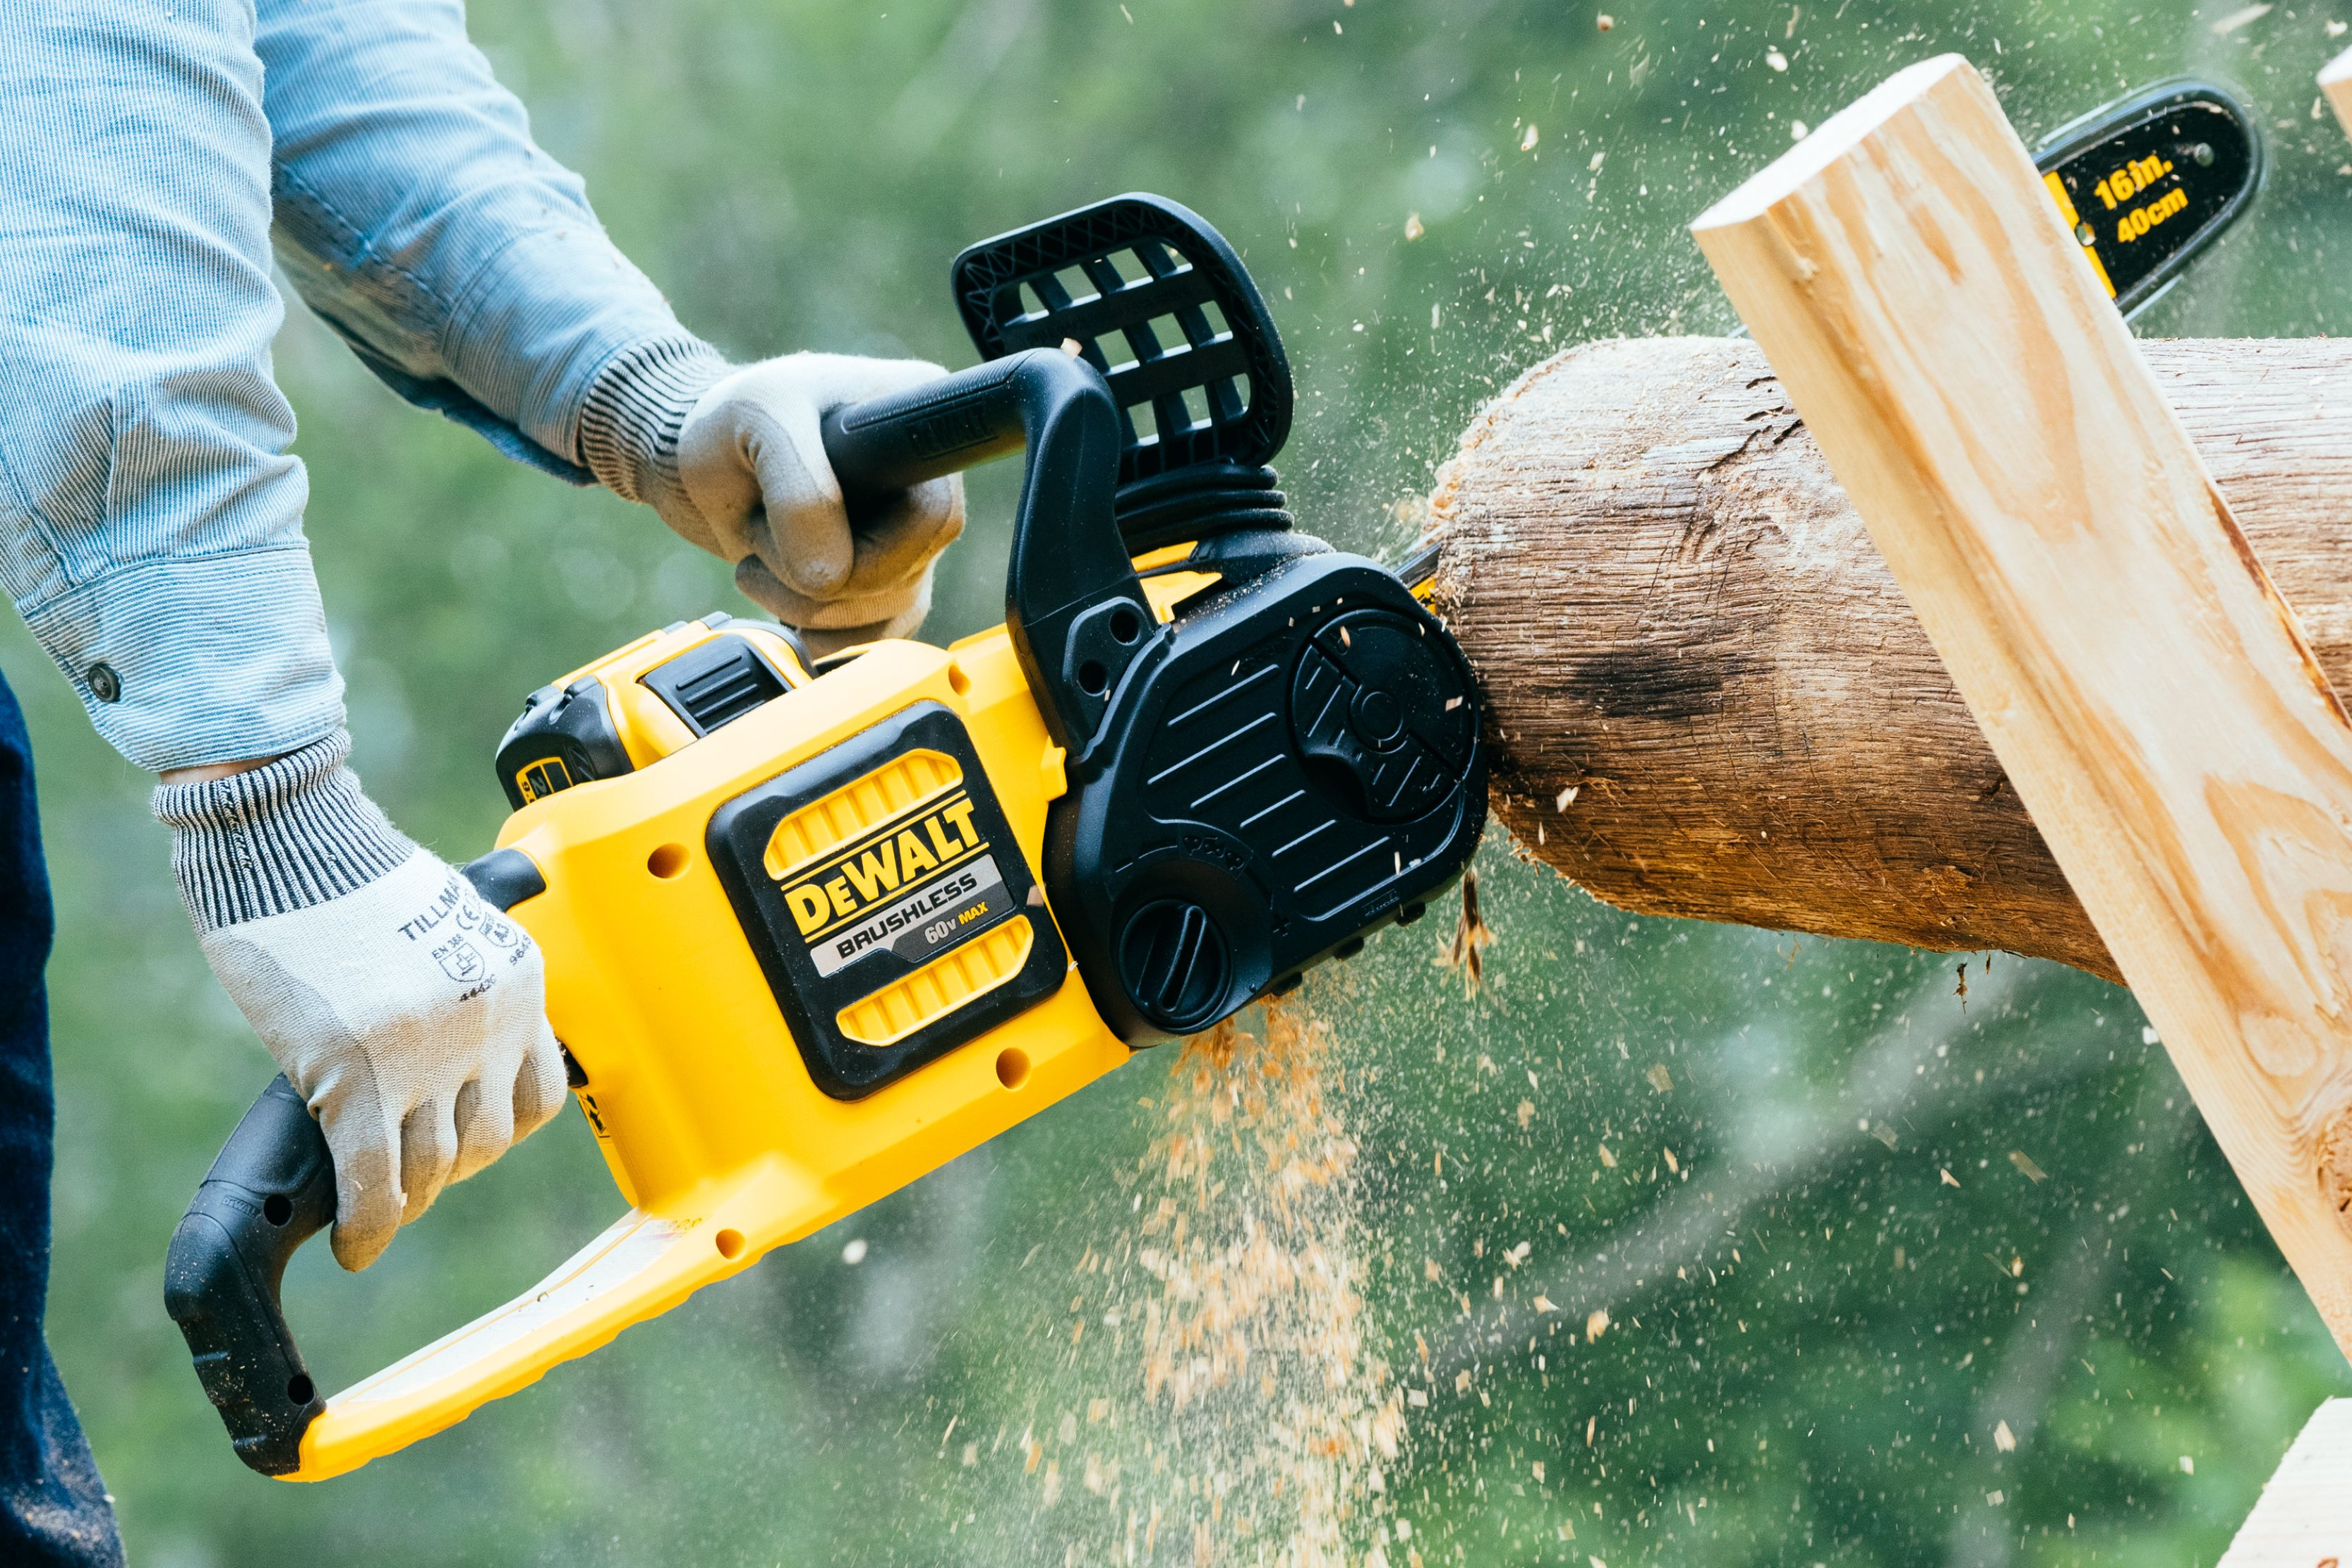 Best Electric Chainsaws 2020 | Battery-Powered Chainsaw Reviews